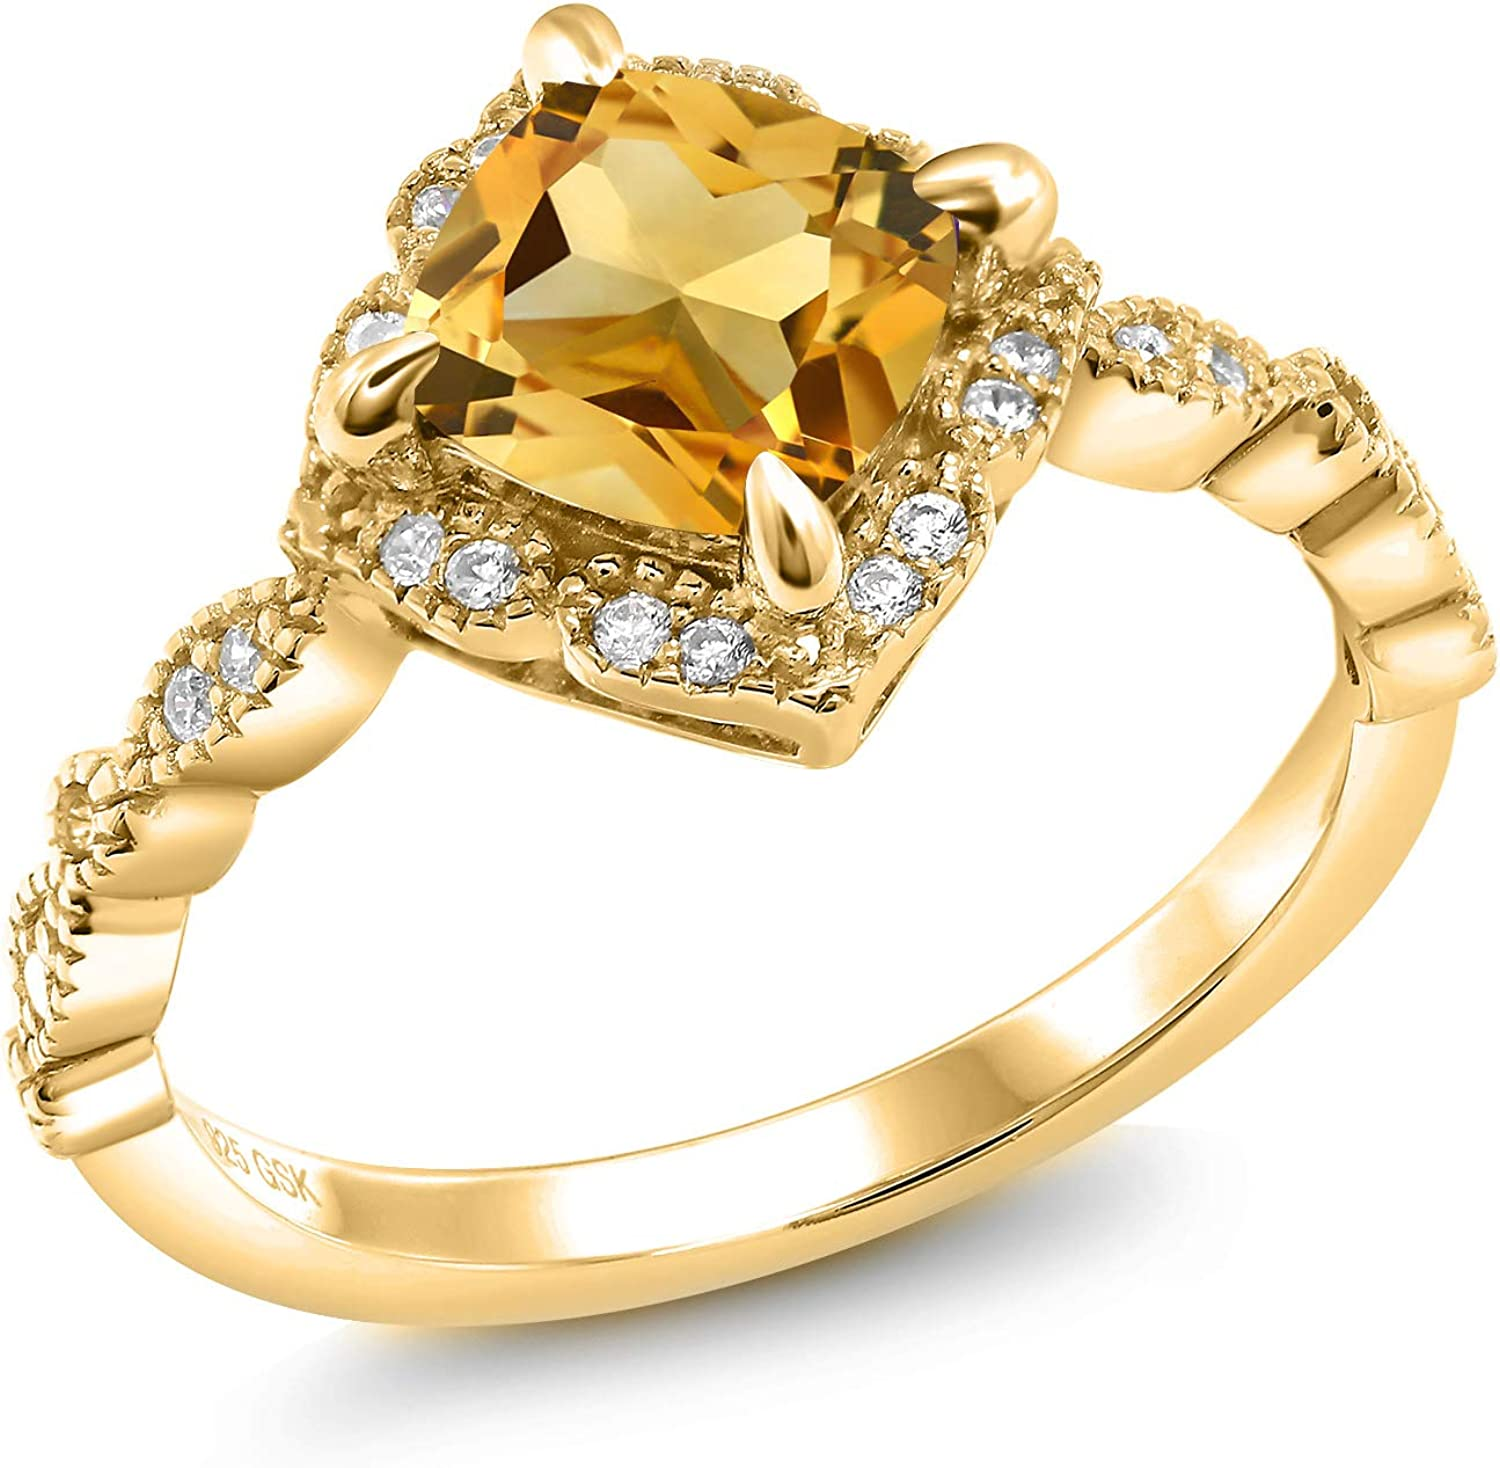 Gem Stone King 18K Yellow Silver Japan Maker New Wome Ranking integrated 1st place Gold Citrine Plated